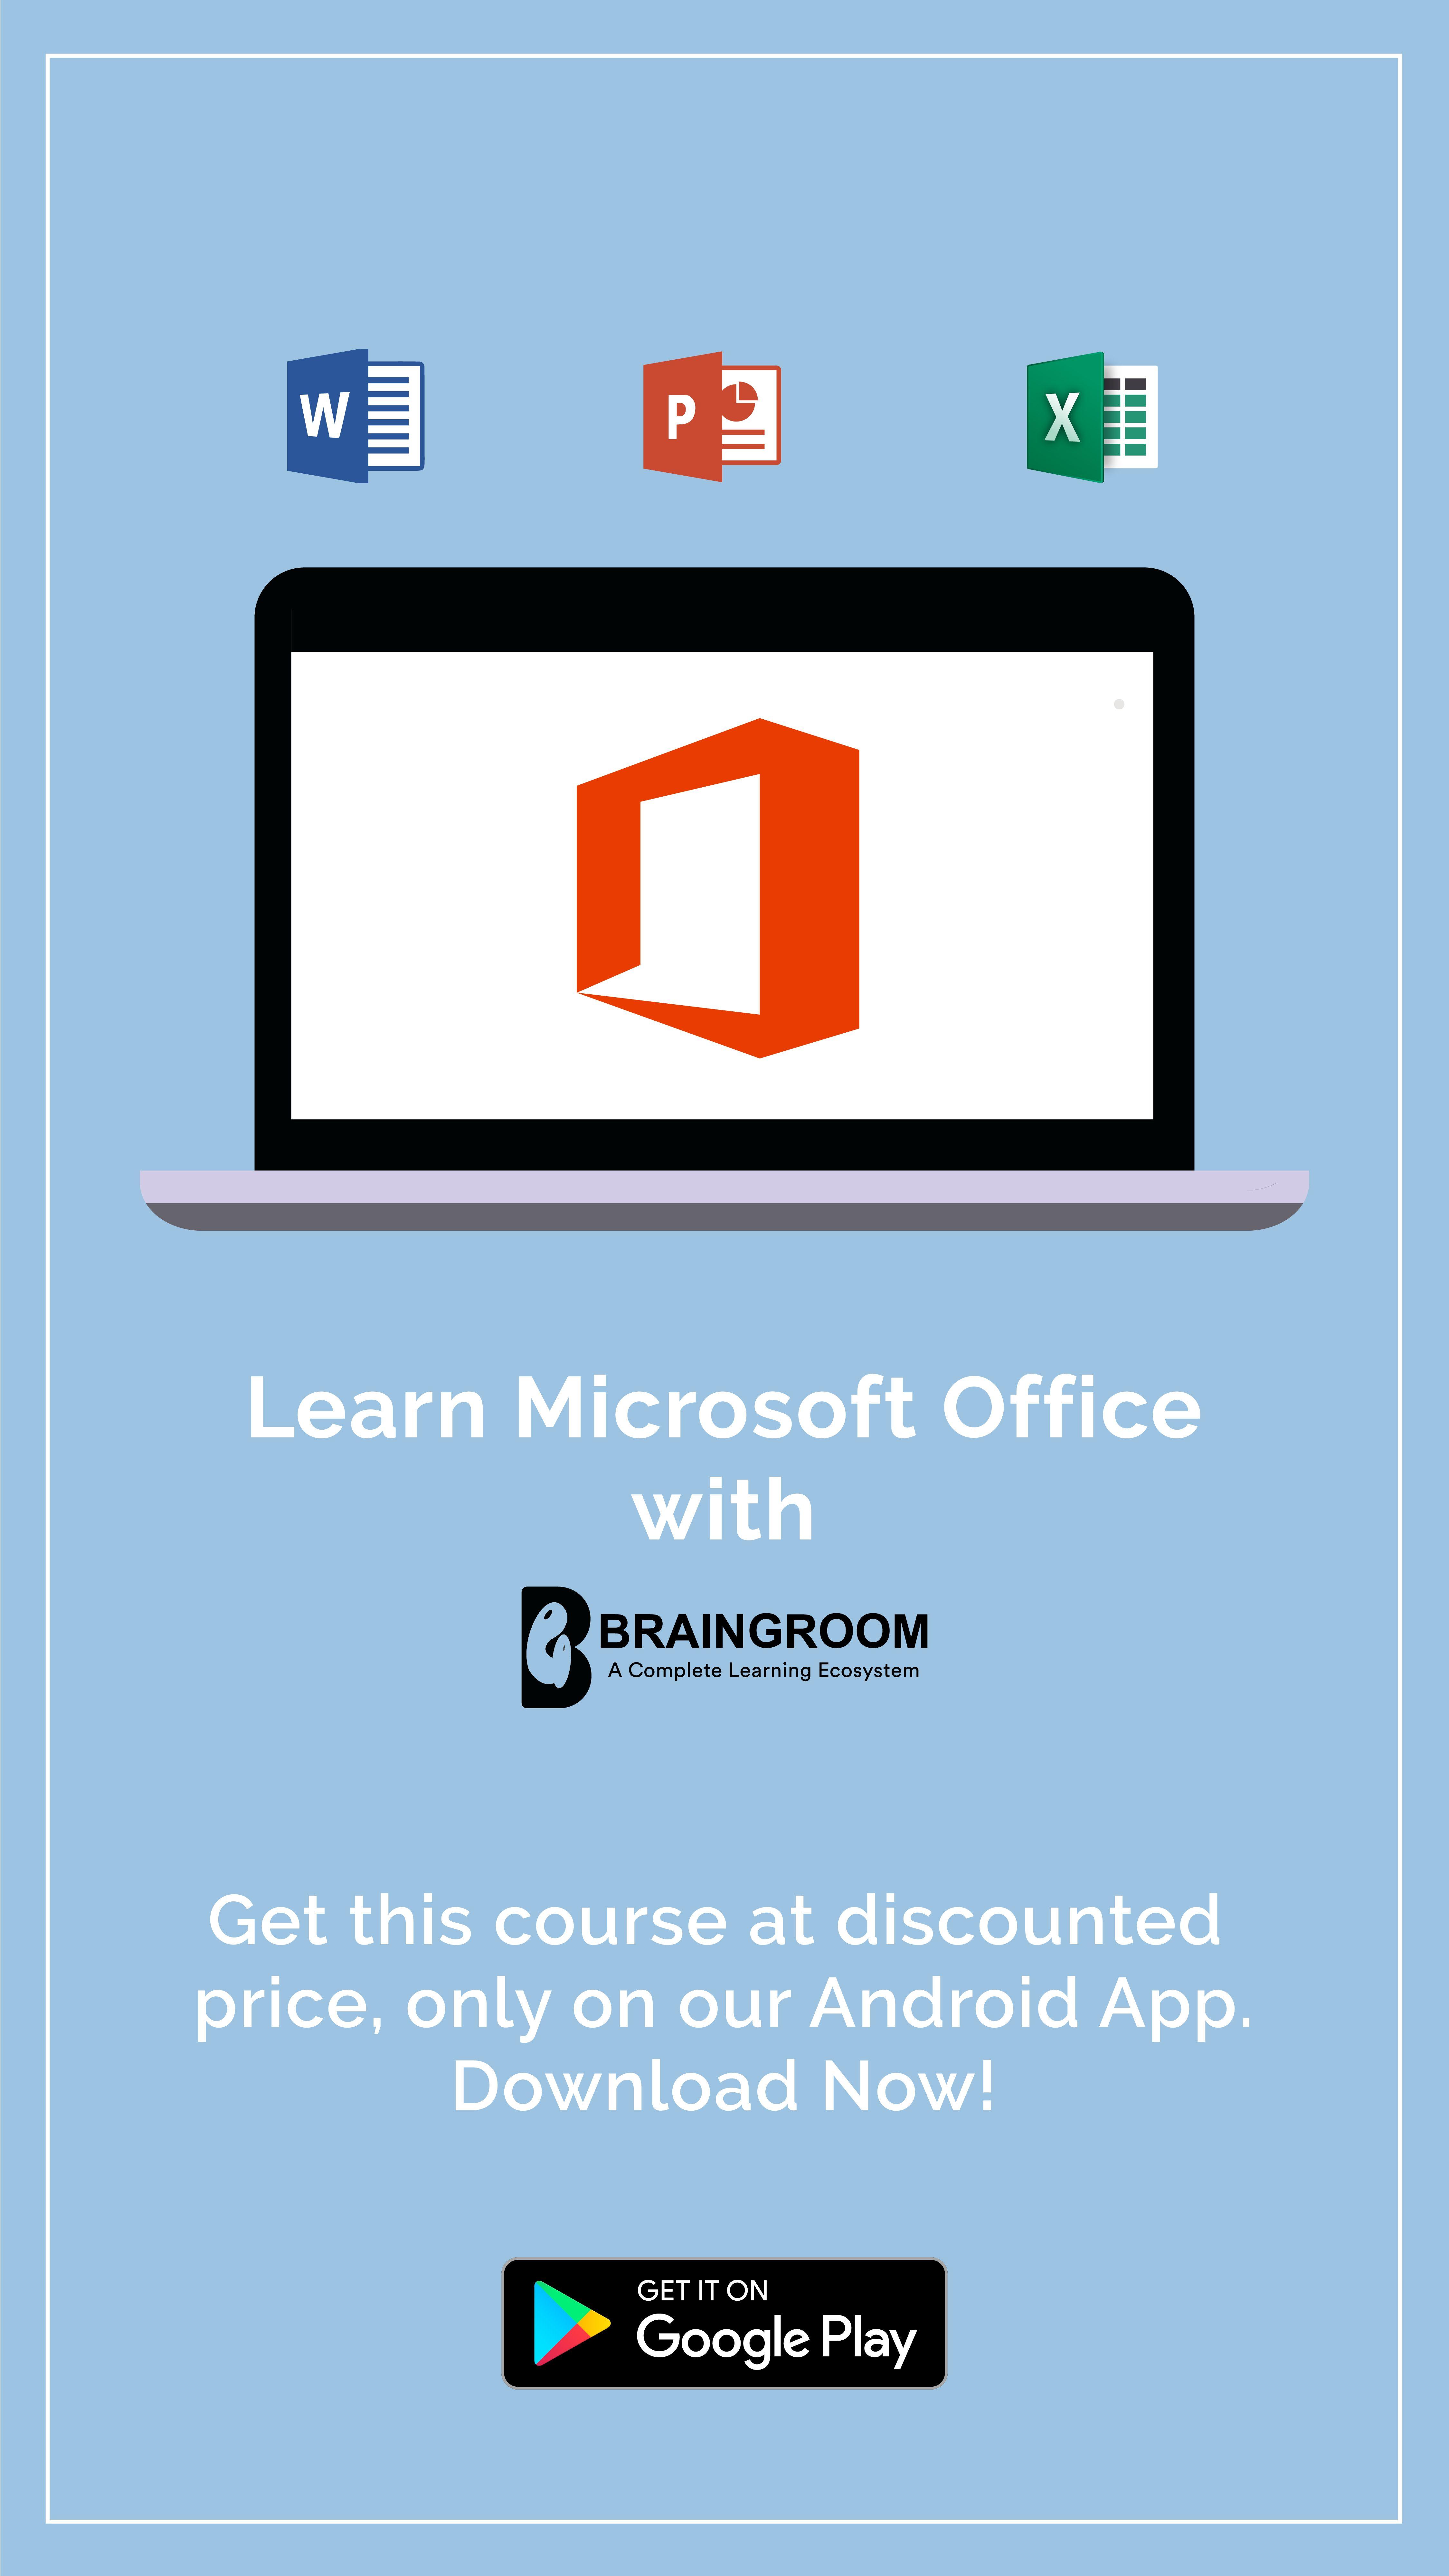 Learn Microsoft Office Learning Microsoft Online Courses Online Education